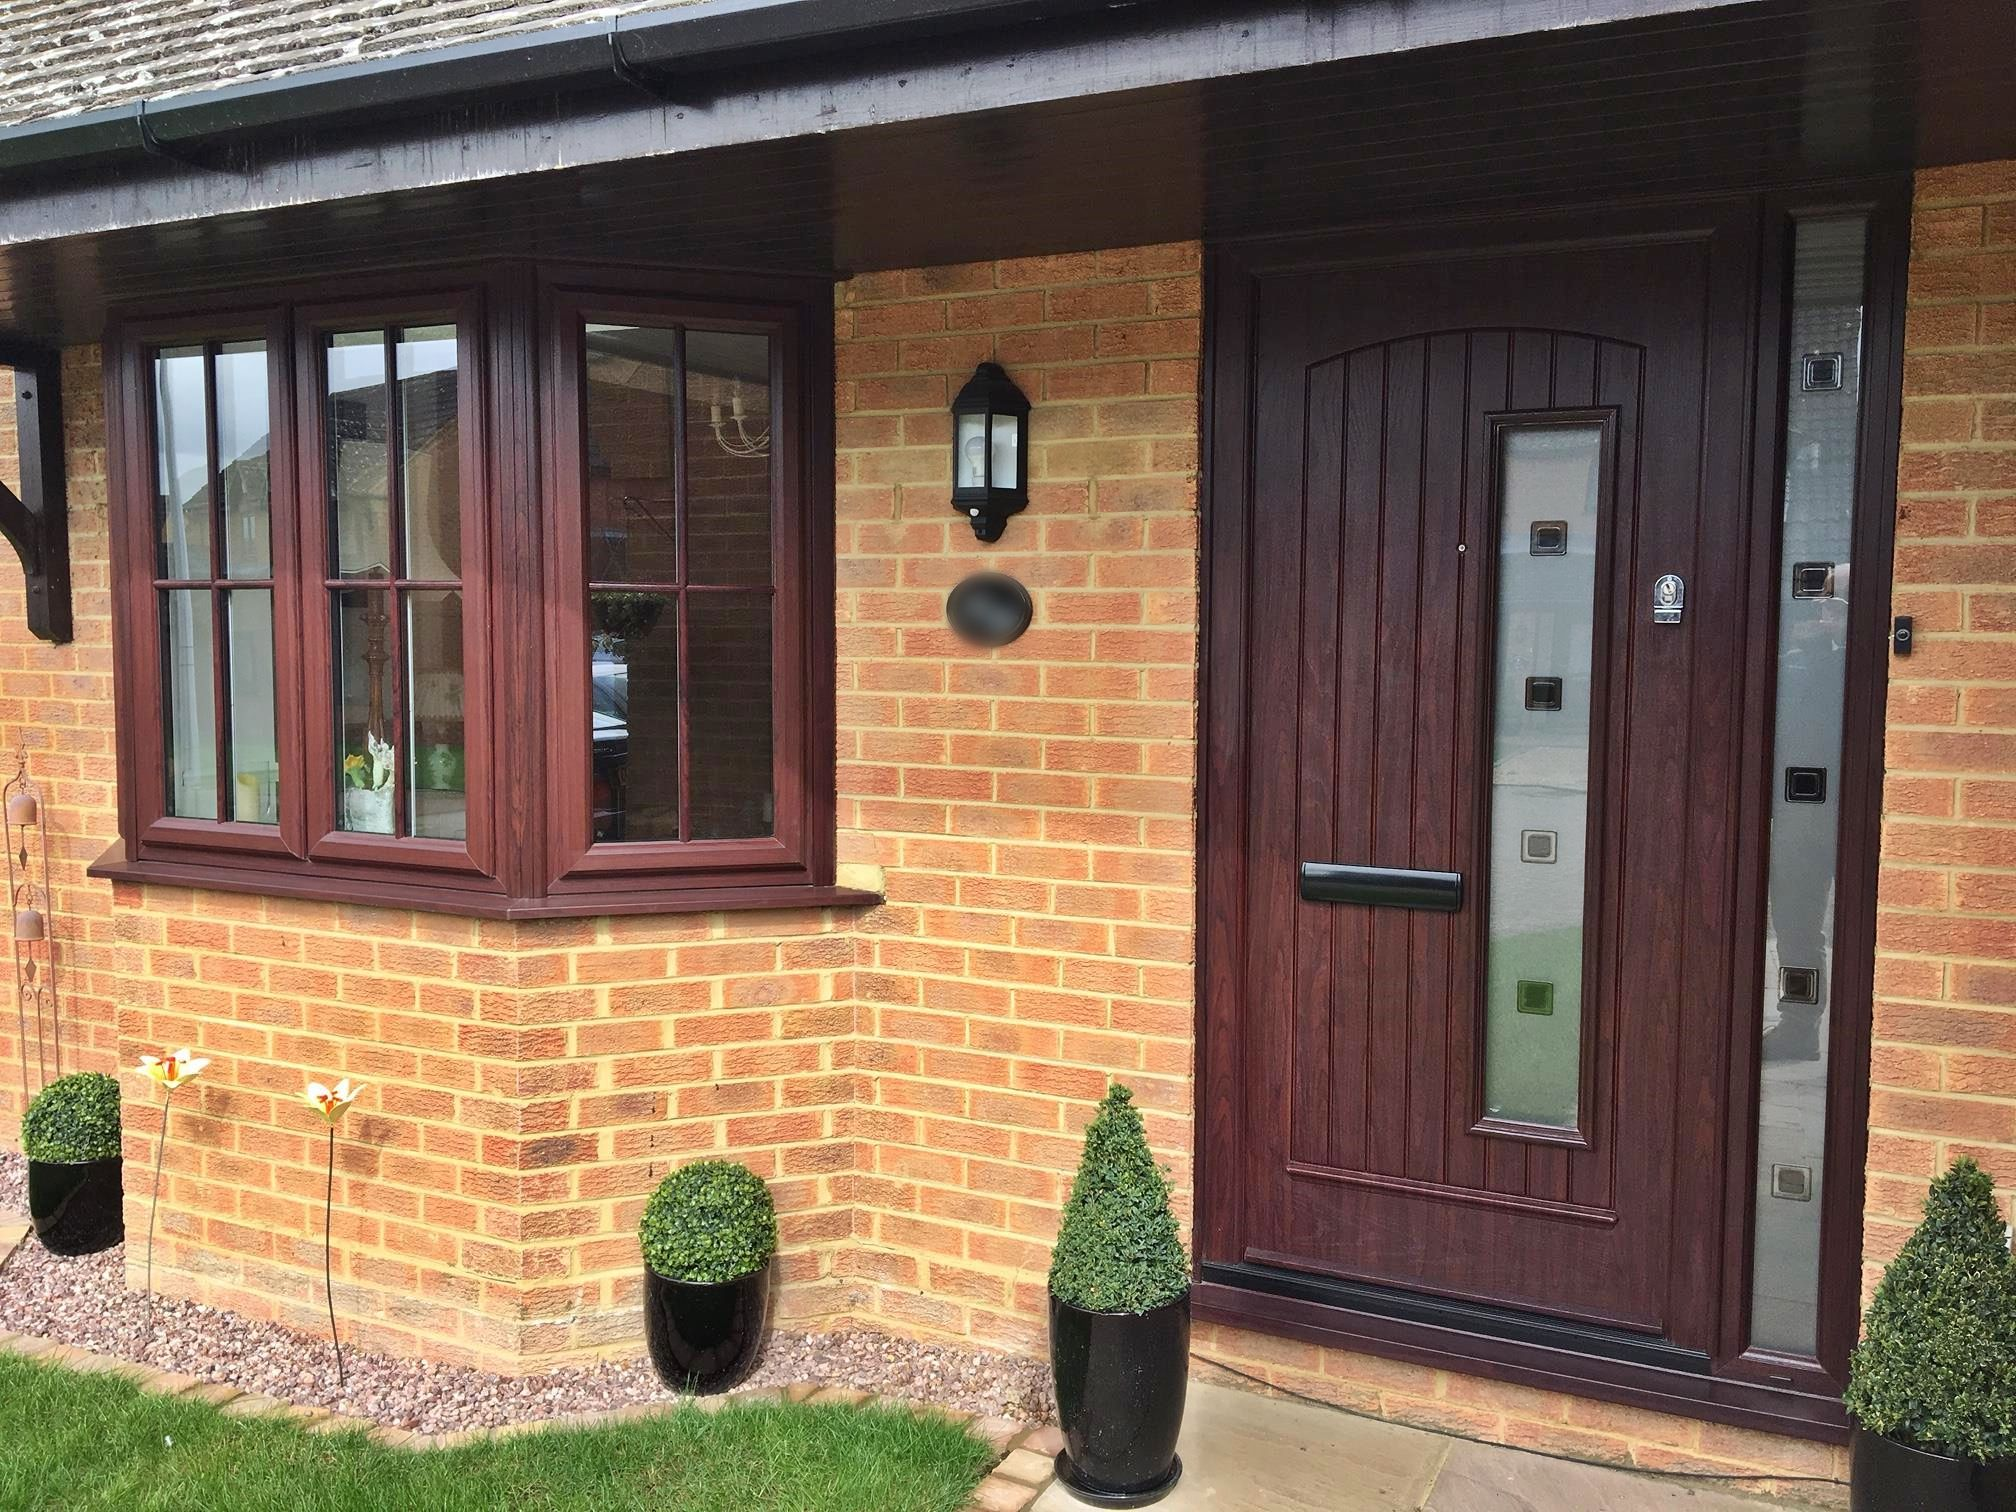 Rosewood composite front entrance door and rosewood upvc frame A rated windows supplied and installed by & Rosewood composite front entrance door and rosewood upvc frame A ...